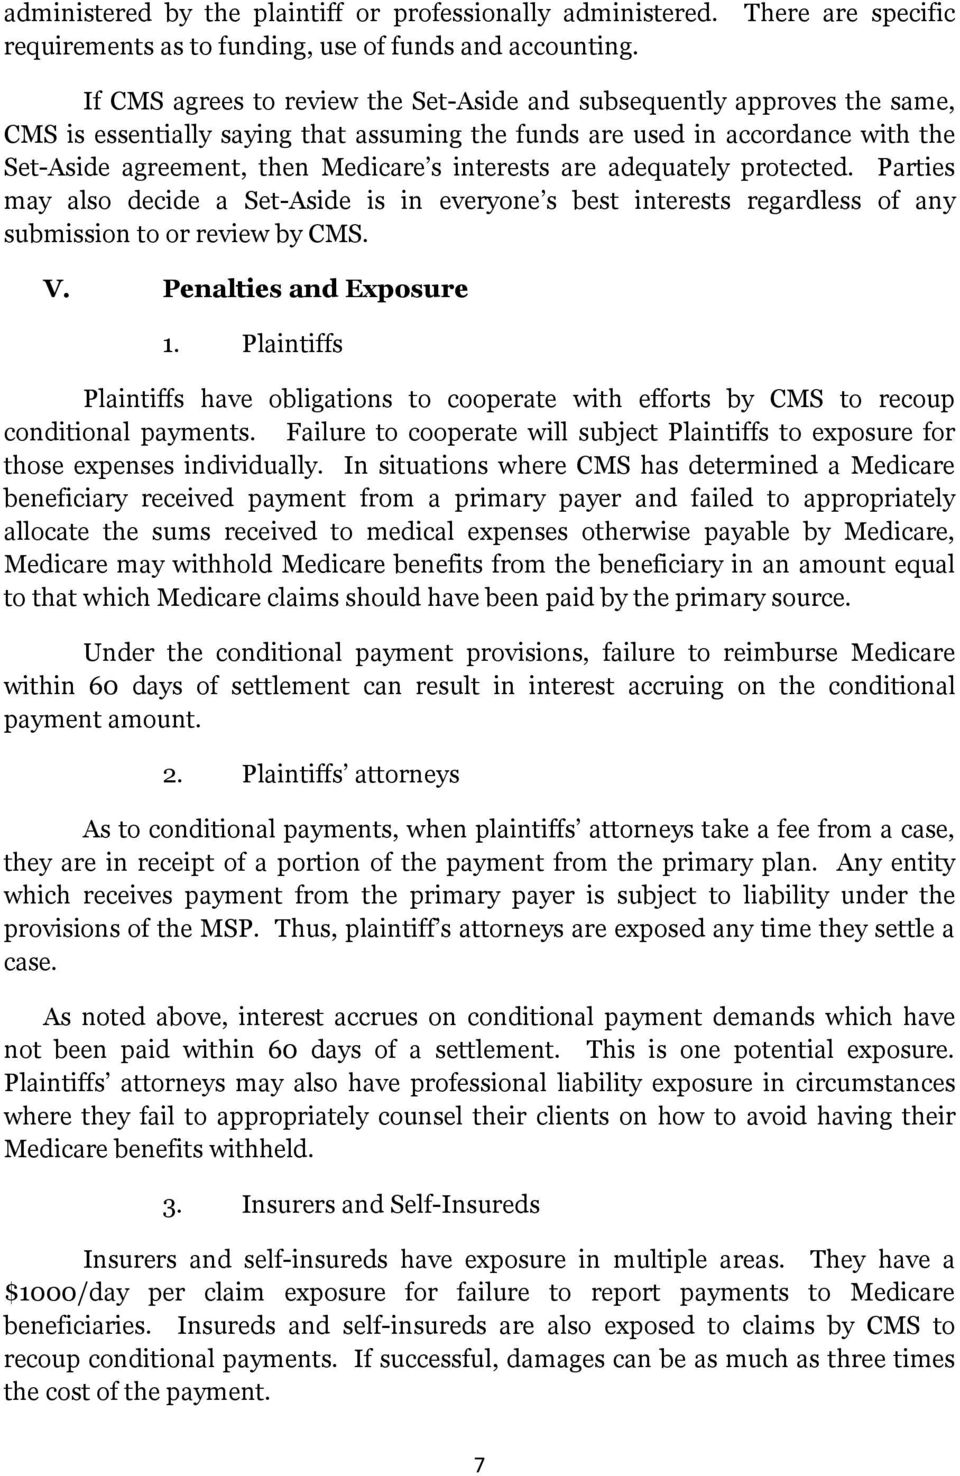 then Medicare s interests are adequately protected. Parties may also decide a Set-Aside is in everyone s best interests regardless of any submission to or review by CMS. V. Penalties and Exposure 1.